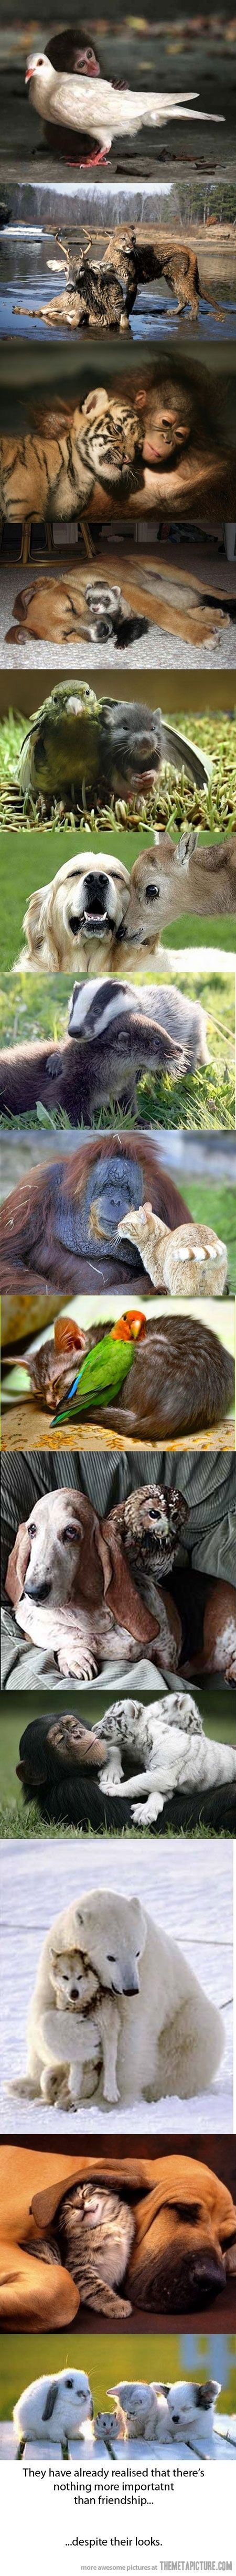 aww unlikely animal friends